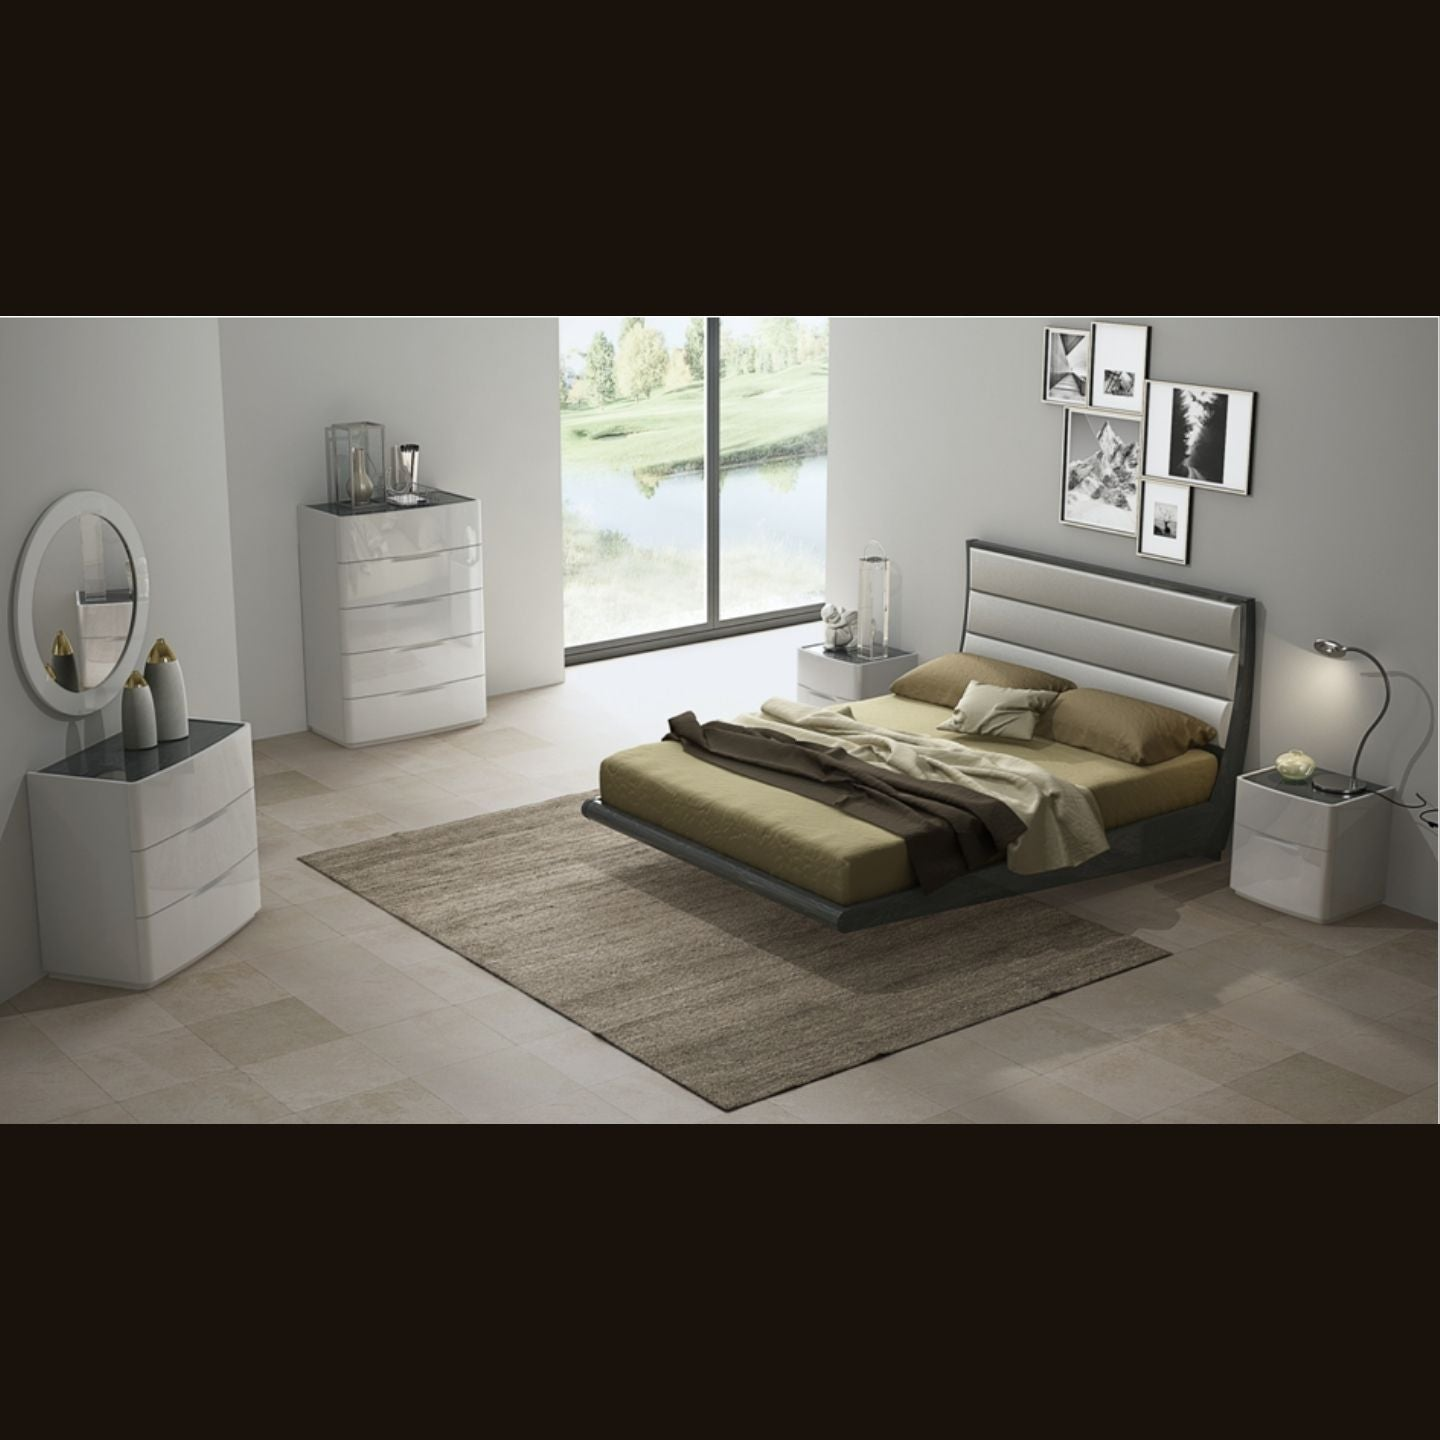 Milan Queen Bedroom Set by Perfect Line in Grey Walnut, 6 PC